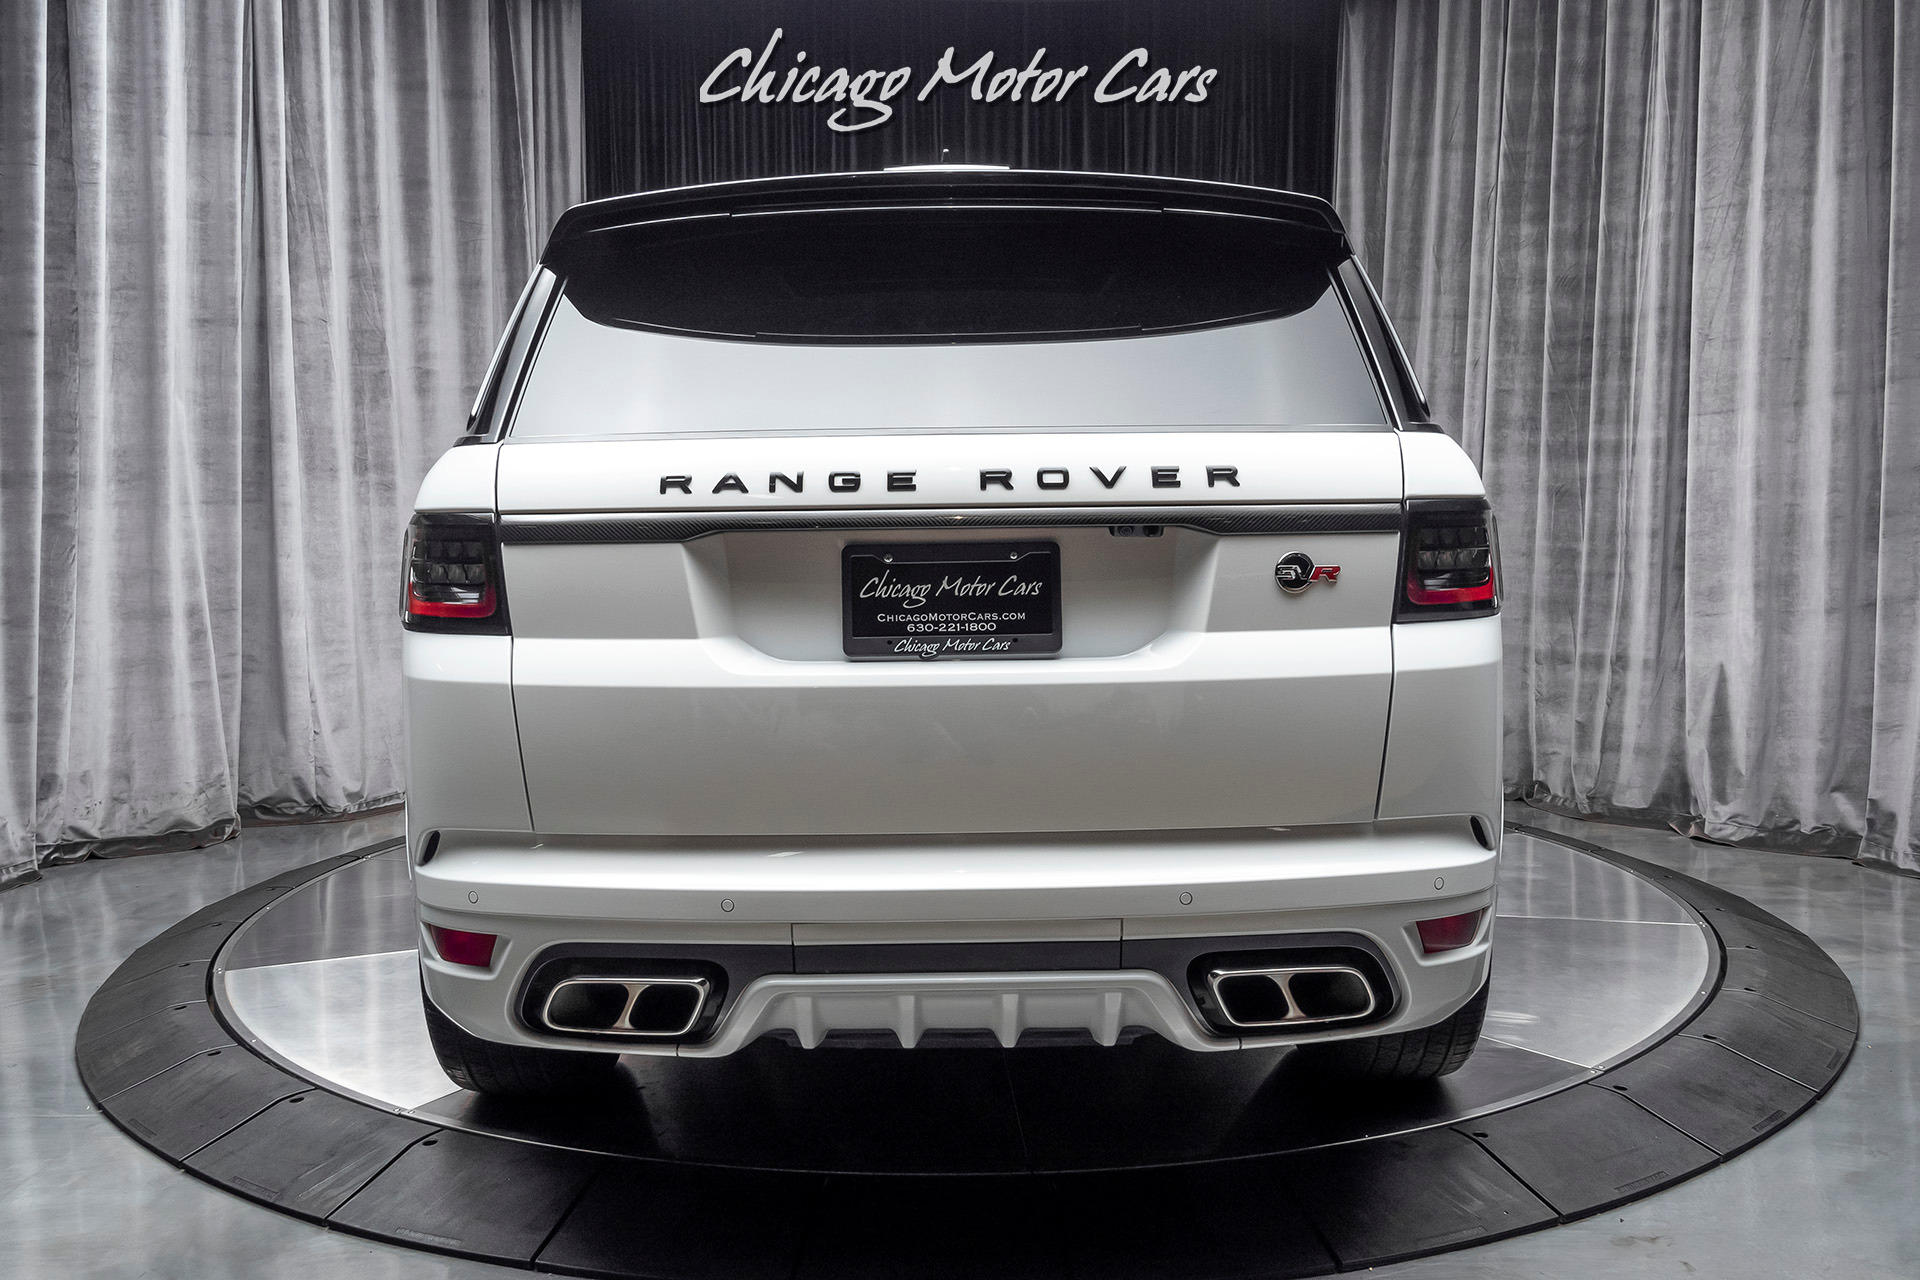 Used-2020-Land-Rover-Range-Rover-Sport-SVR-Carbon-Fiber-Exterior-Package-Loaded